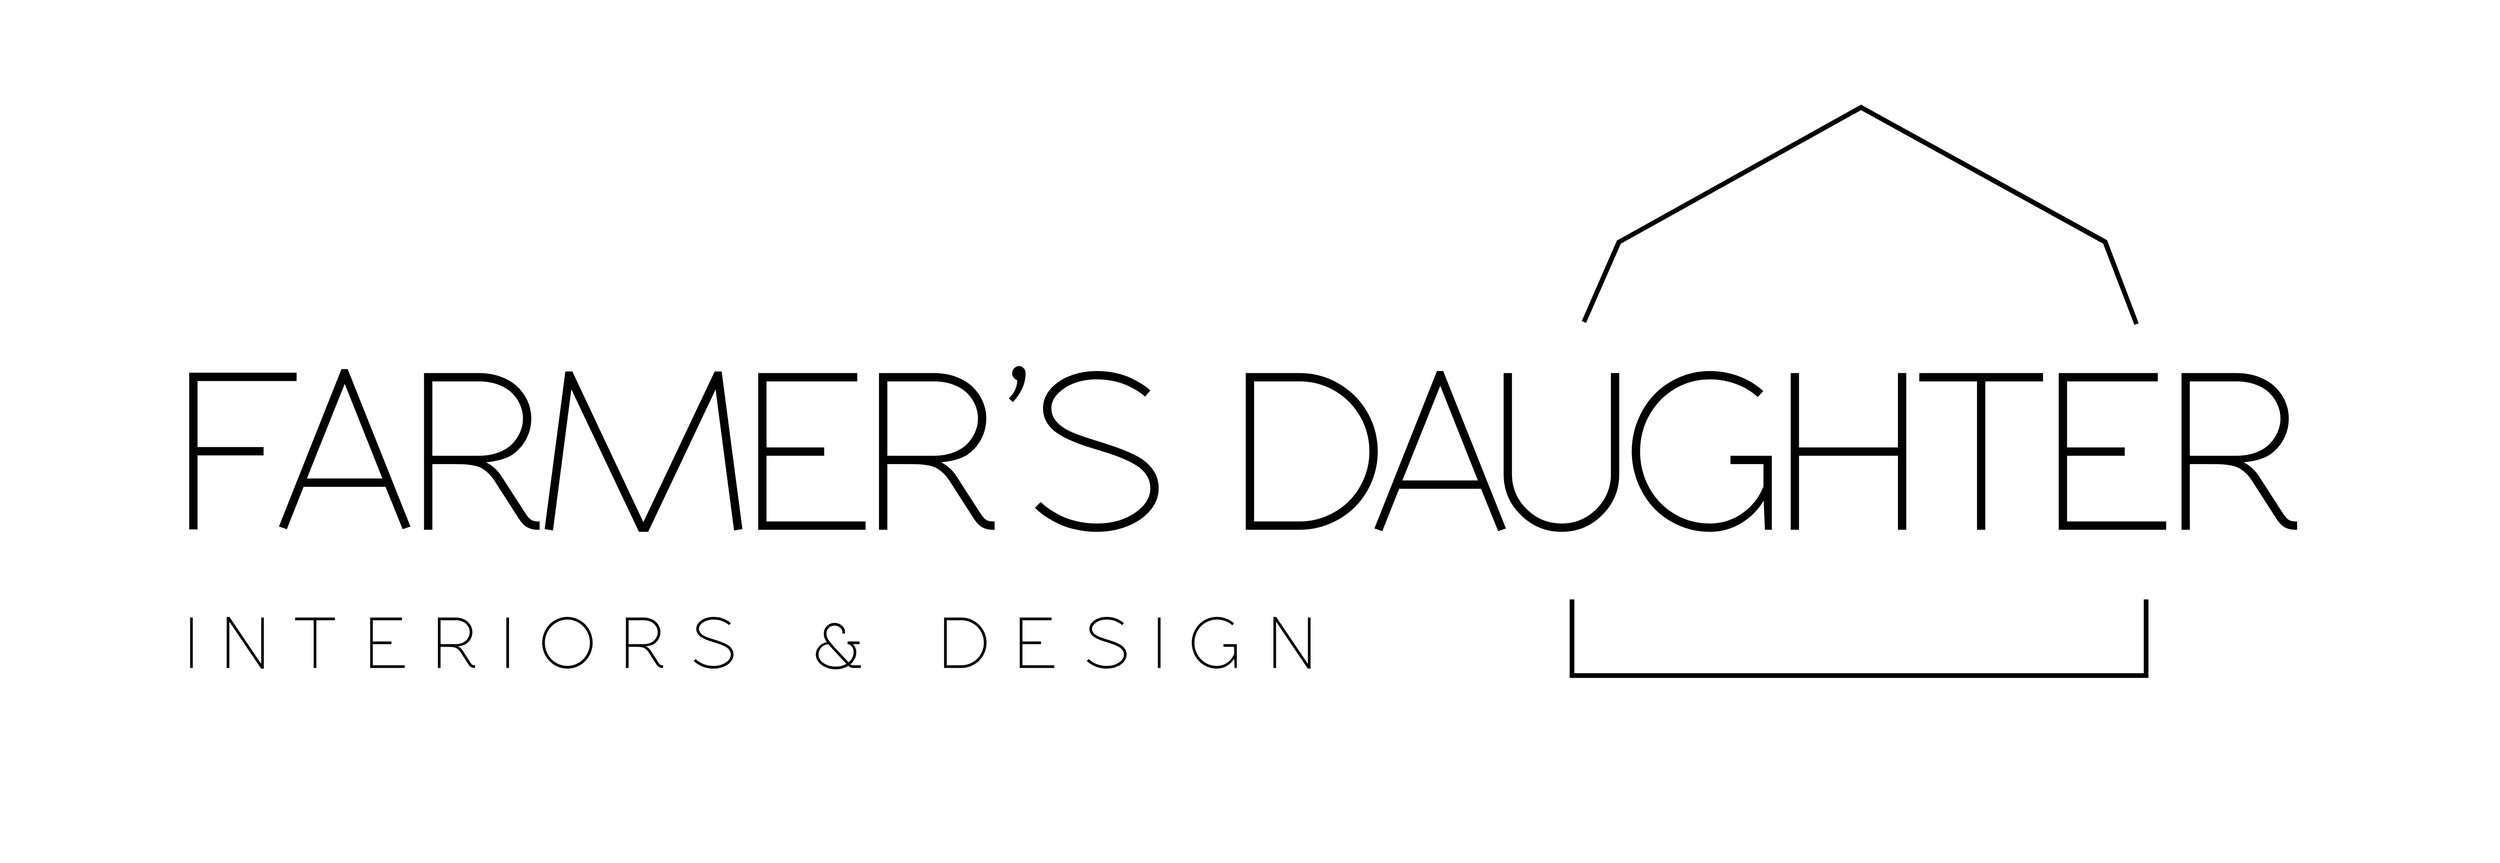 the logo - The logo was designed by a great friend of mine, who is now in the process of launching her own creative business.